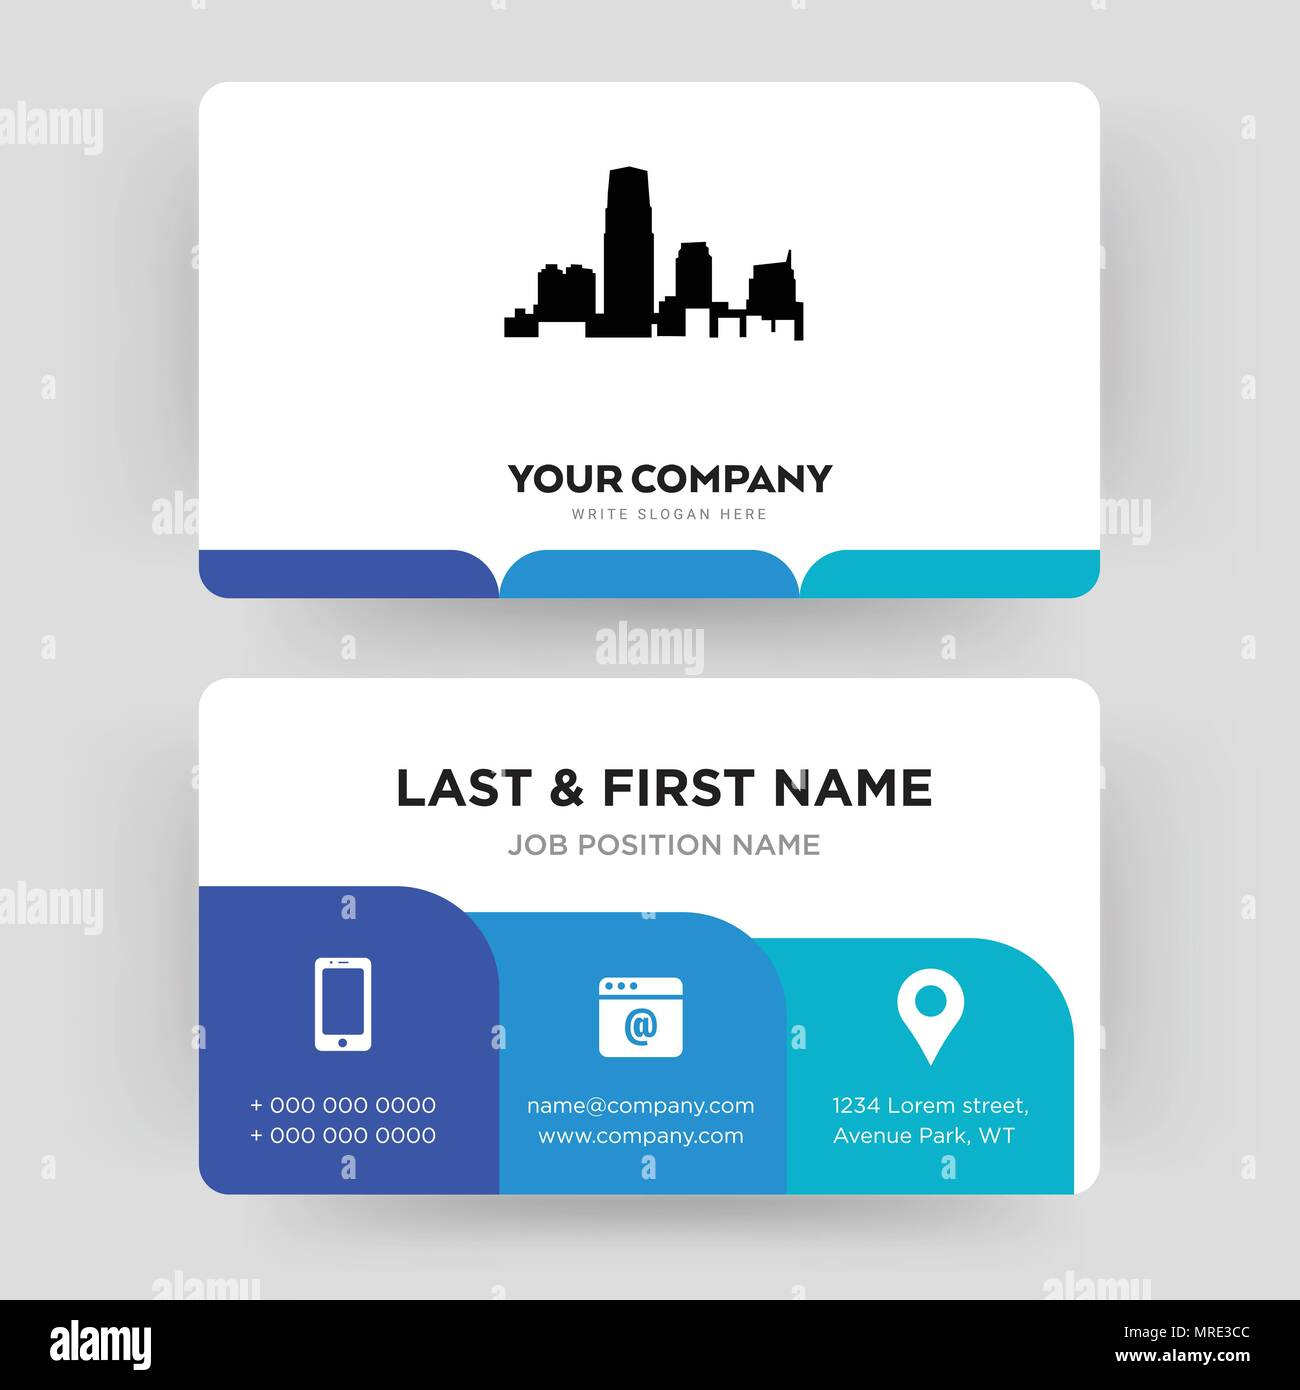 New jersey business card design template visiting for your company new jersey business card design template visiting for your company modern creative and clean identity card vector reheart Image collections